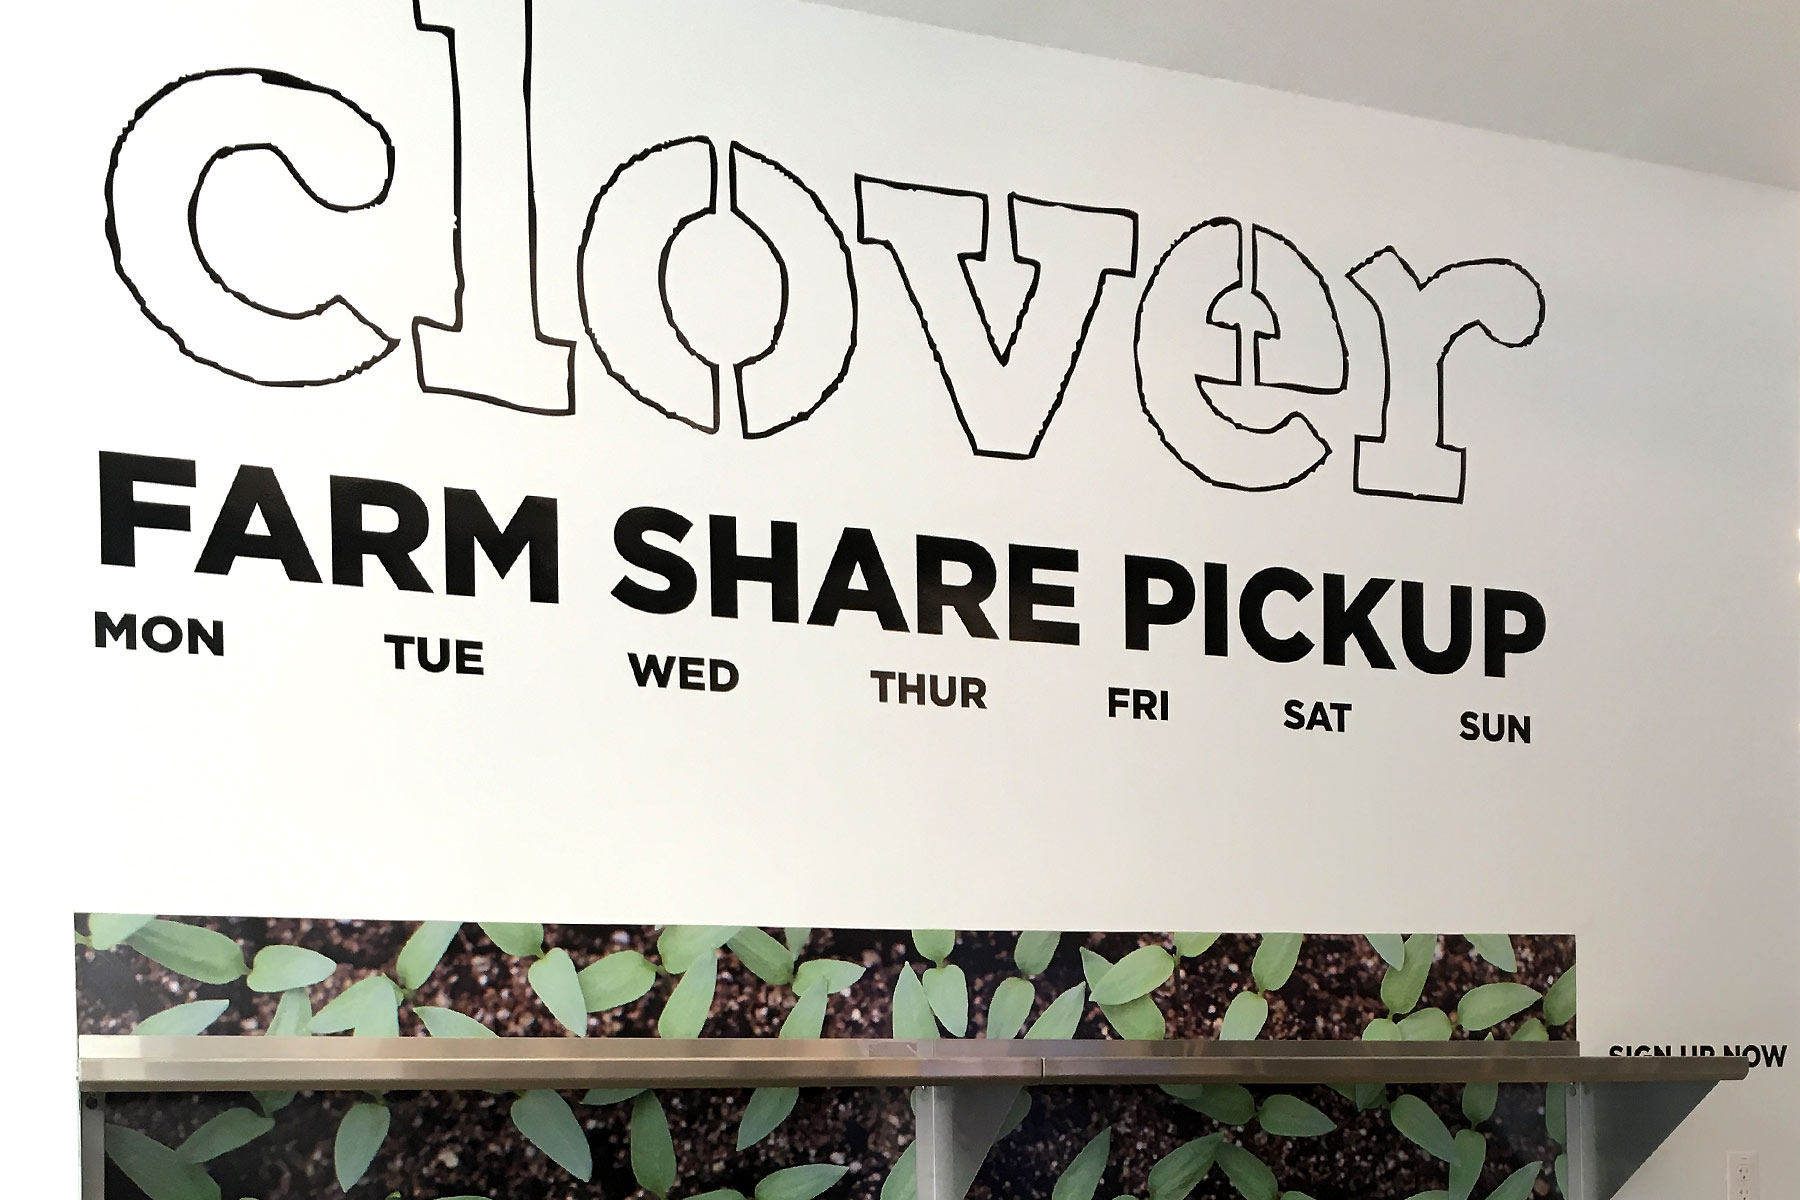 clover food lab obsessed with veggies creativity and quality